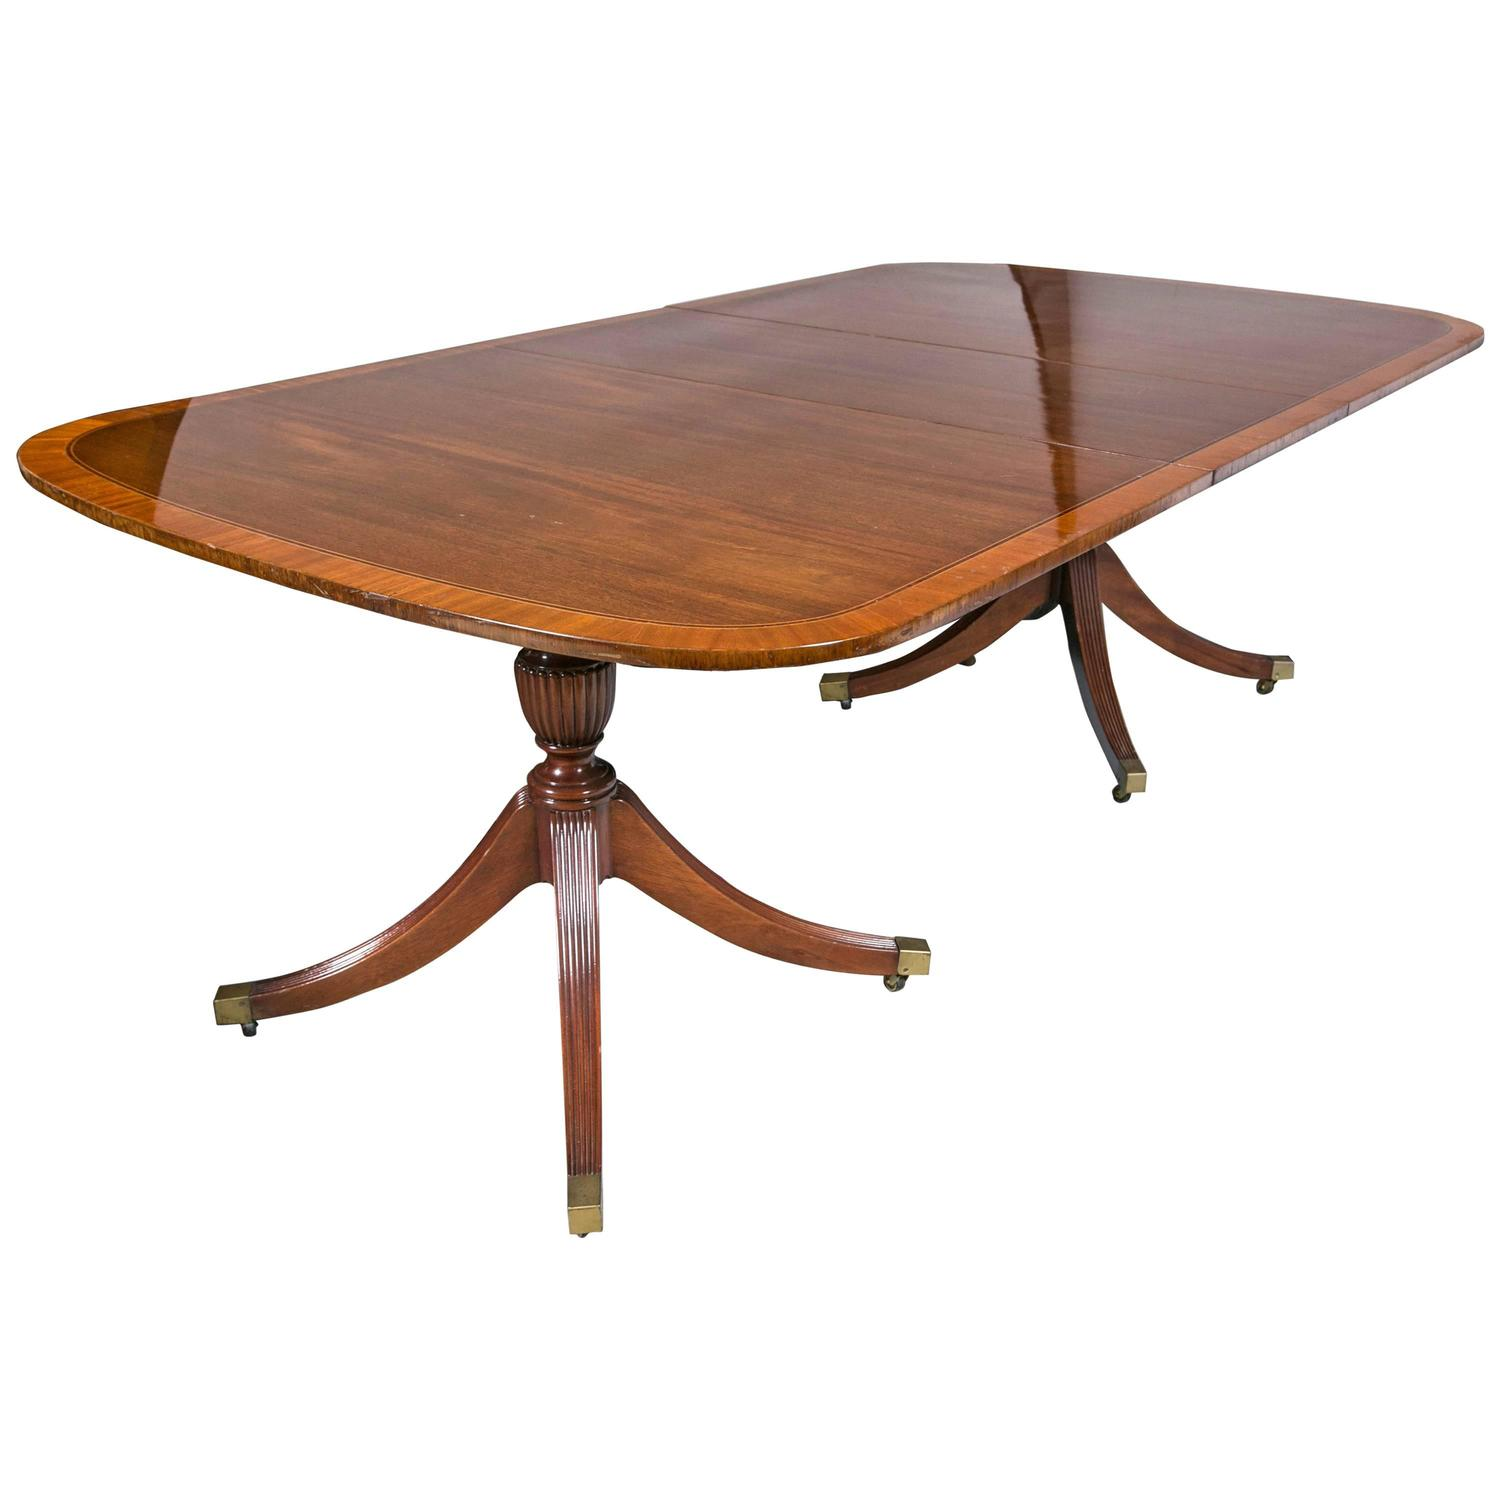 Georgian style mahogany banded dining table by baker with for Dining room table styles